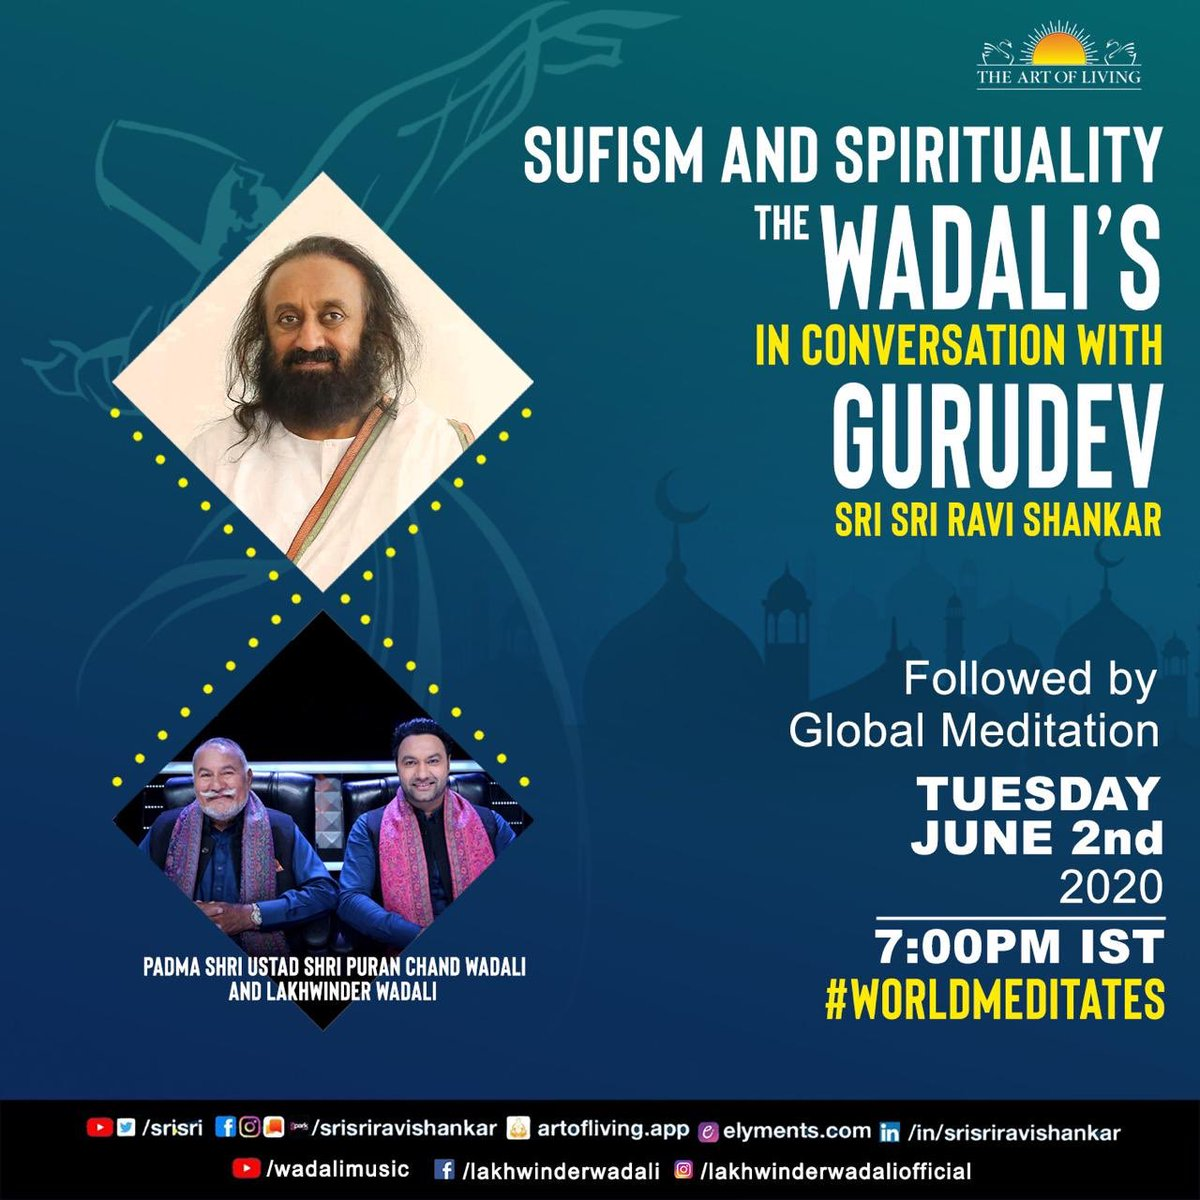 Hey.! Tomorrow 7pm Live conversation with Gurudev Sri Sri Ravi Shankar ji. @ArtofLiving @SriSri #Thewadalis #wadalibrothers #sufimusic https://t.co/6WEZP9Jwqd